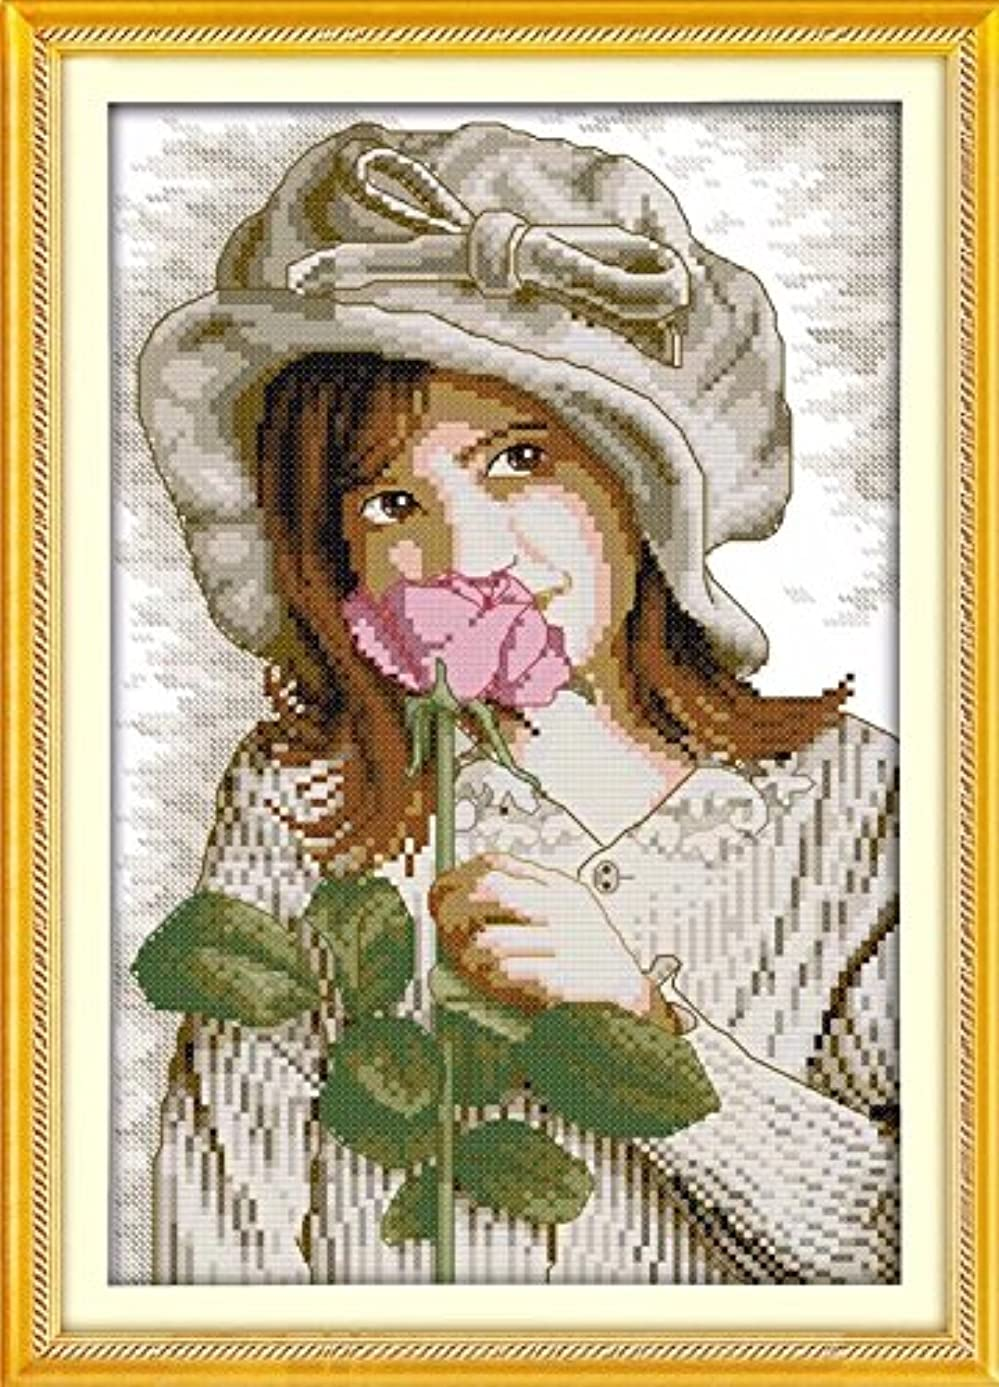 Joy Sunday Cross Stitch Kit 14CT Stamped Embroidery Kits Precise Printed Needlework - A Girl who Smells Flowers 26×35CM